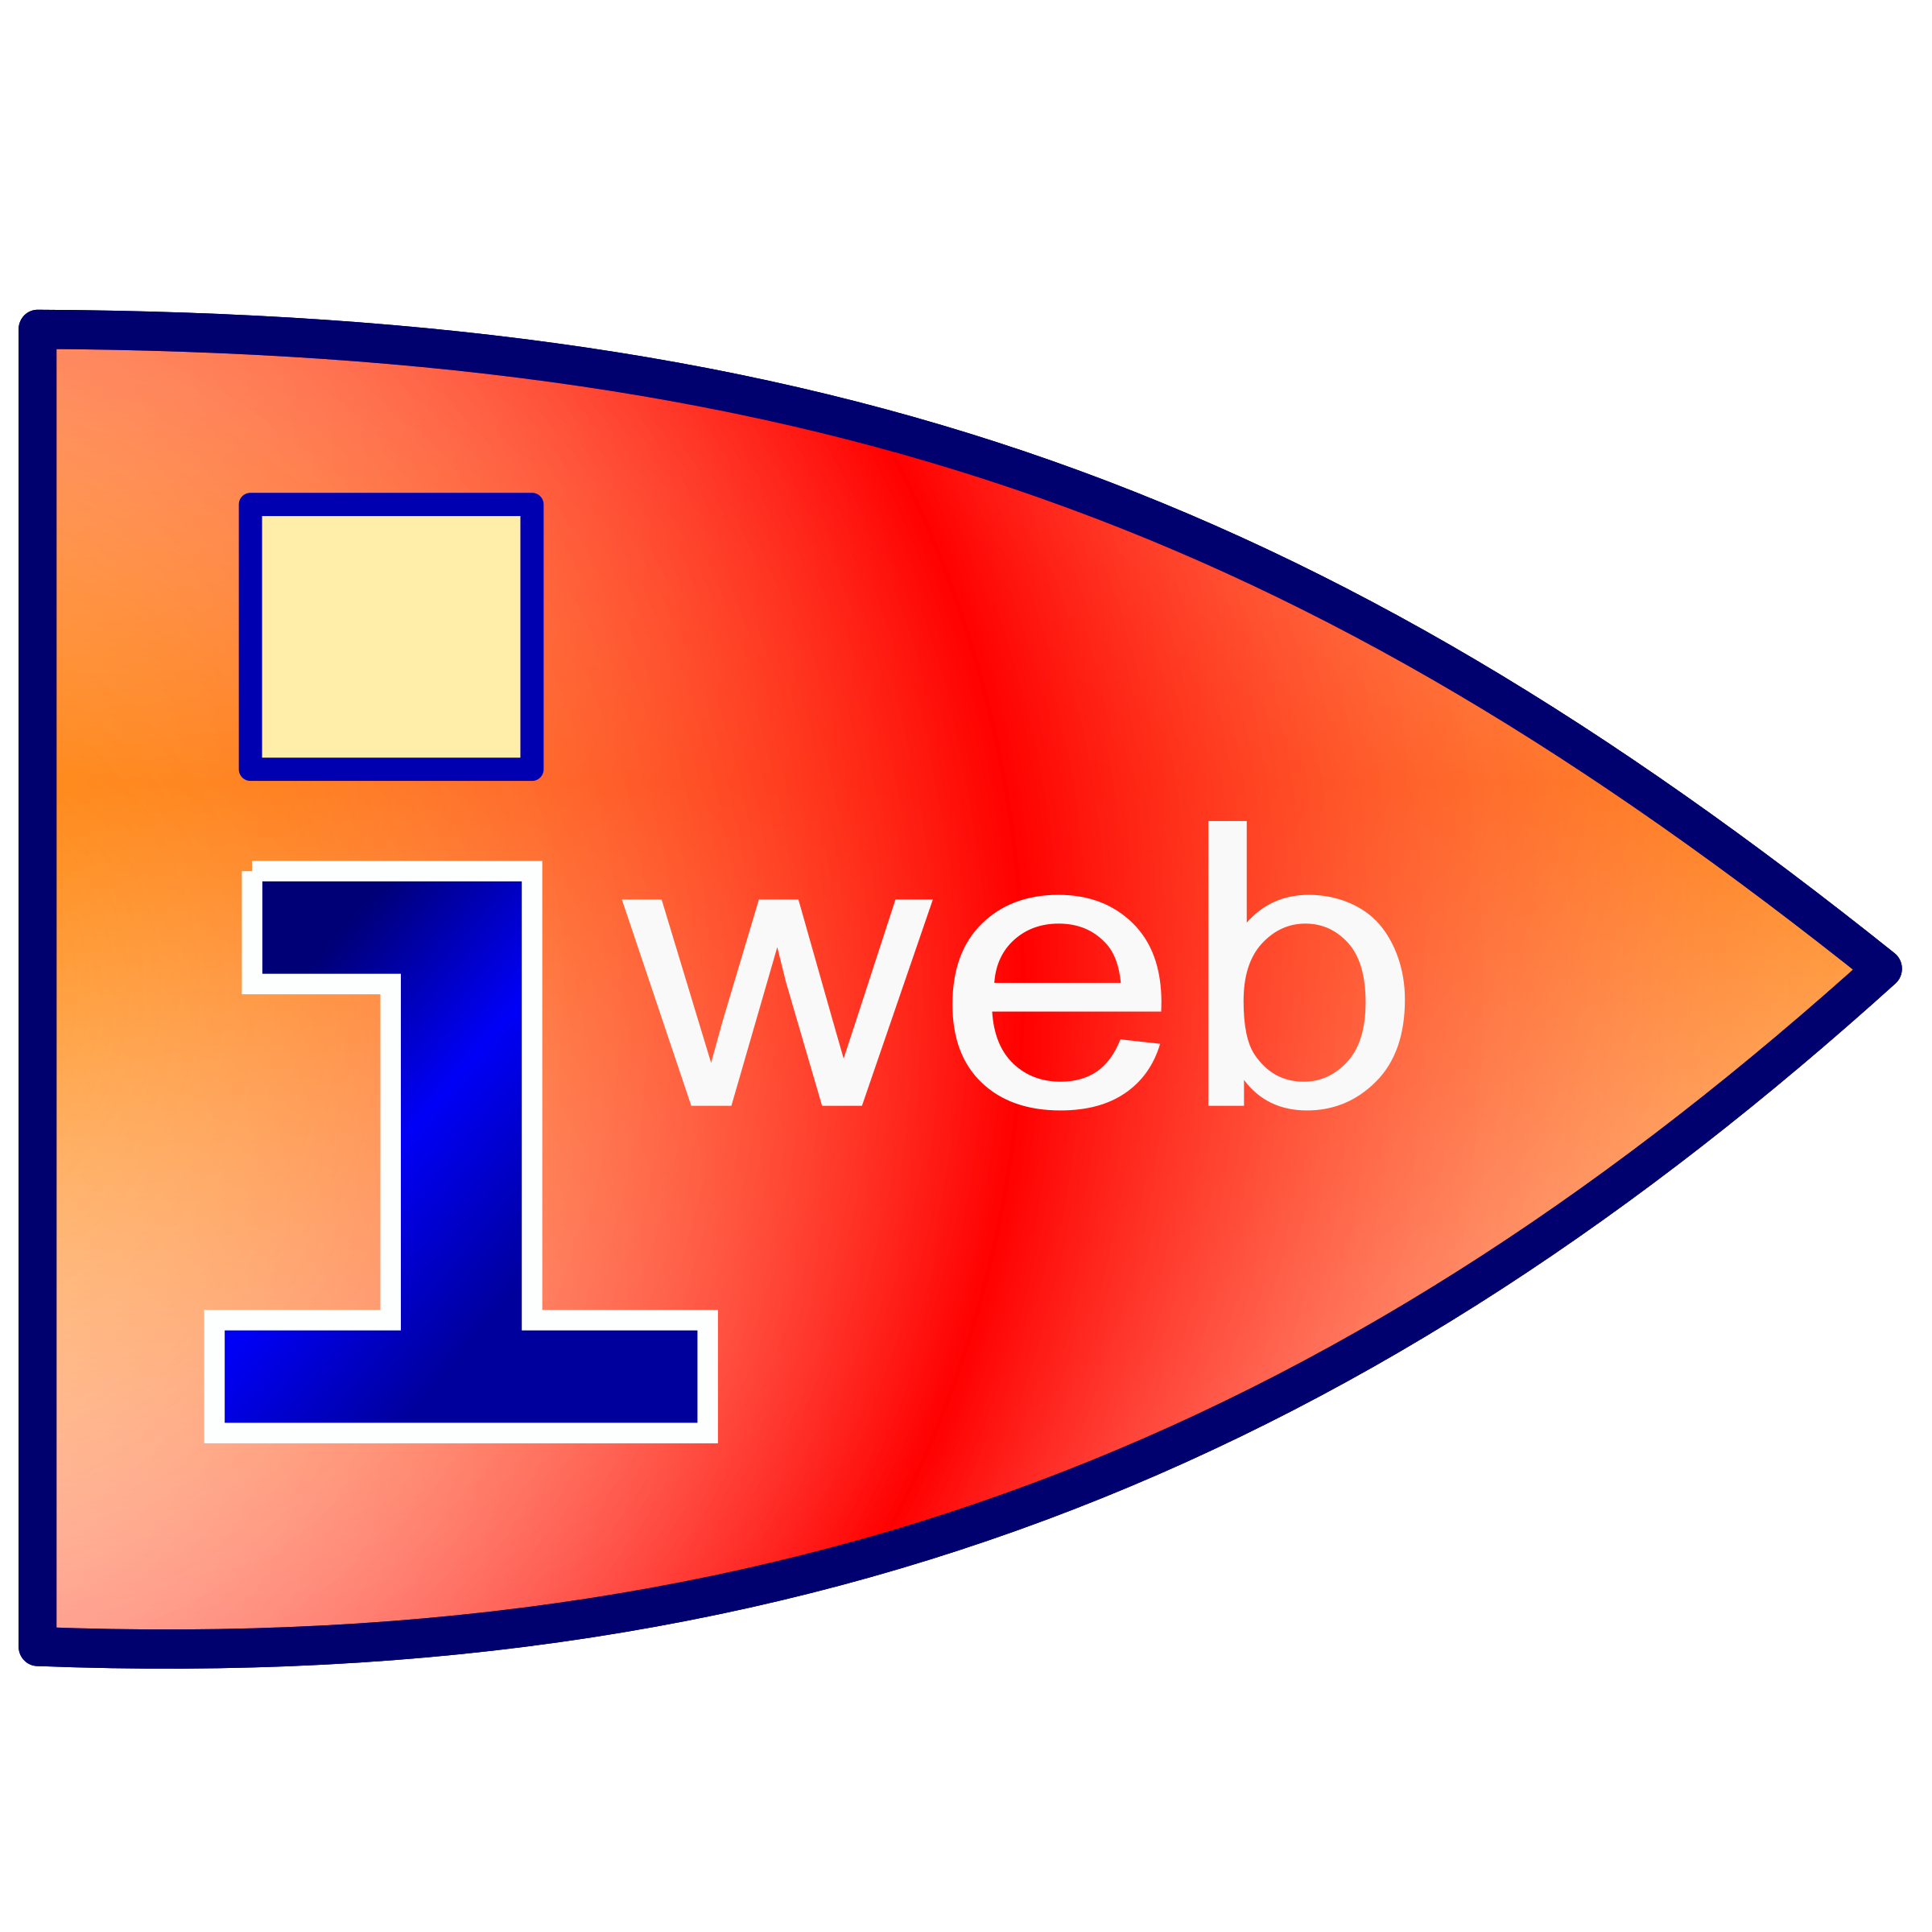 web laucher icon by tomas_arad